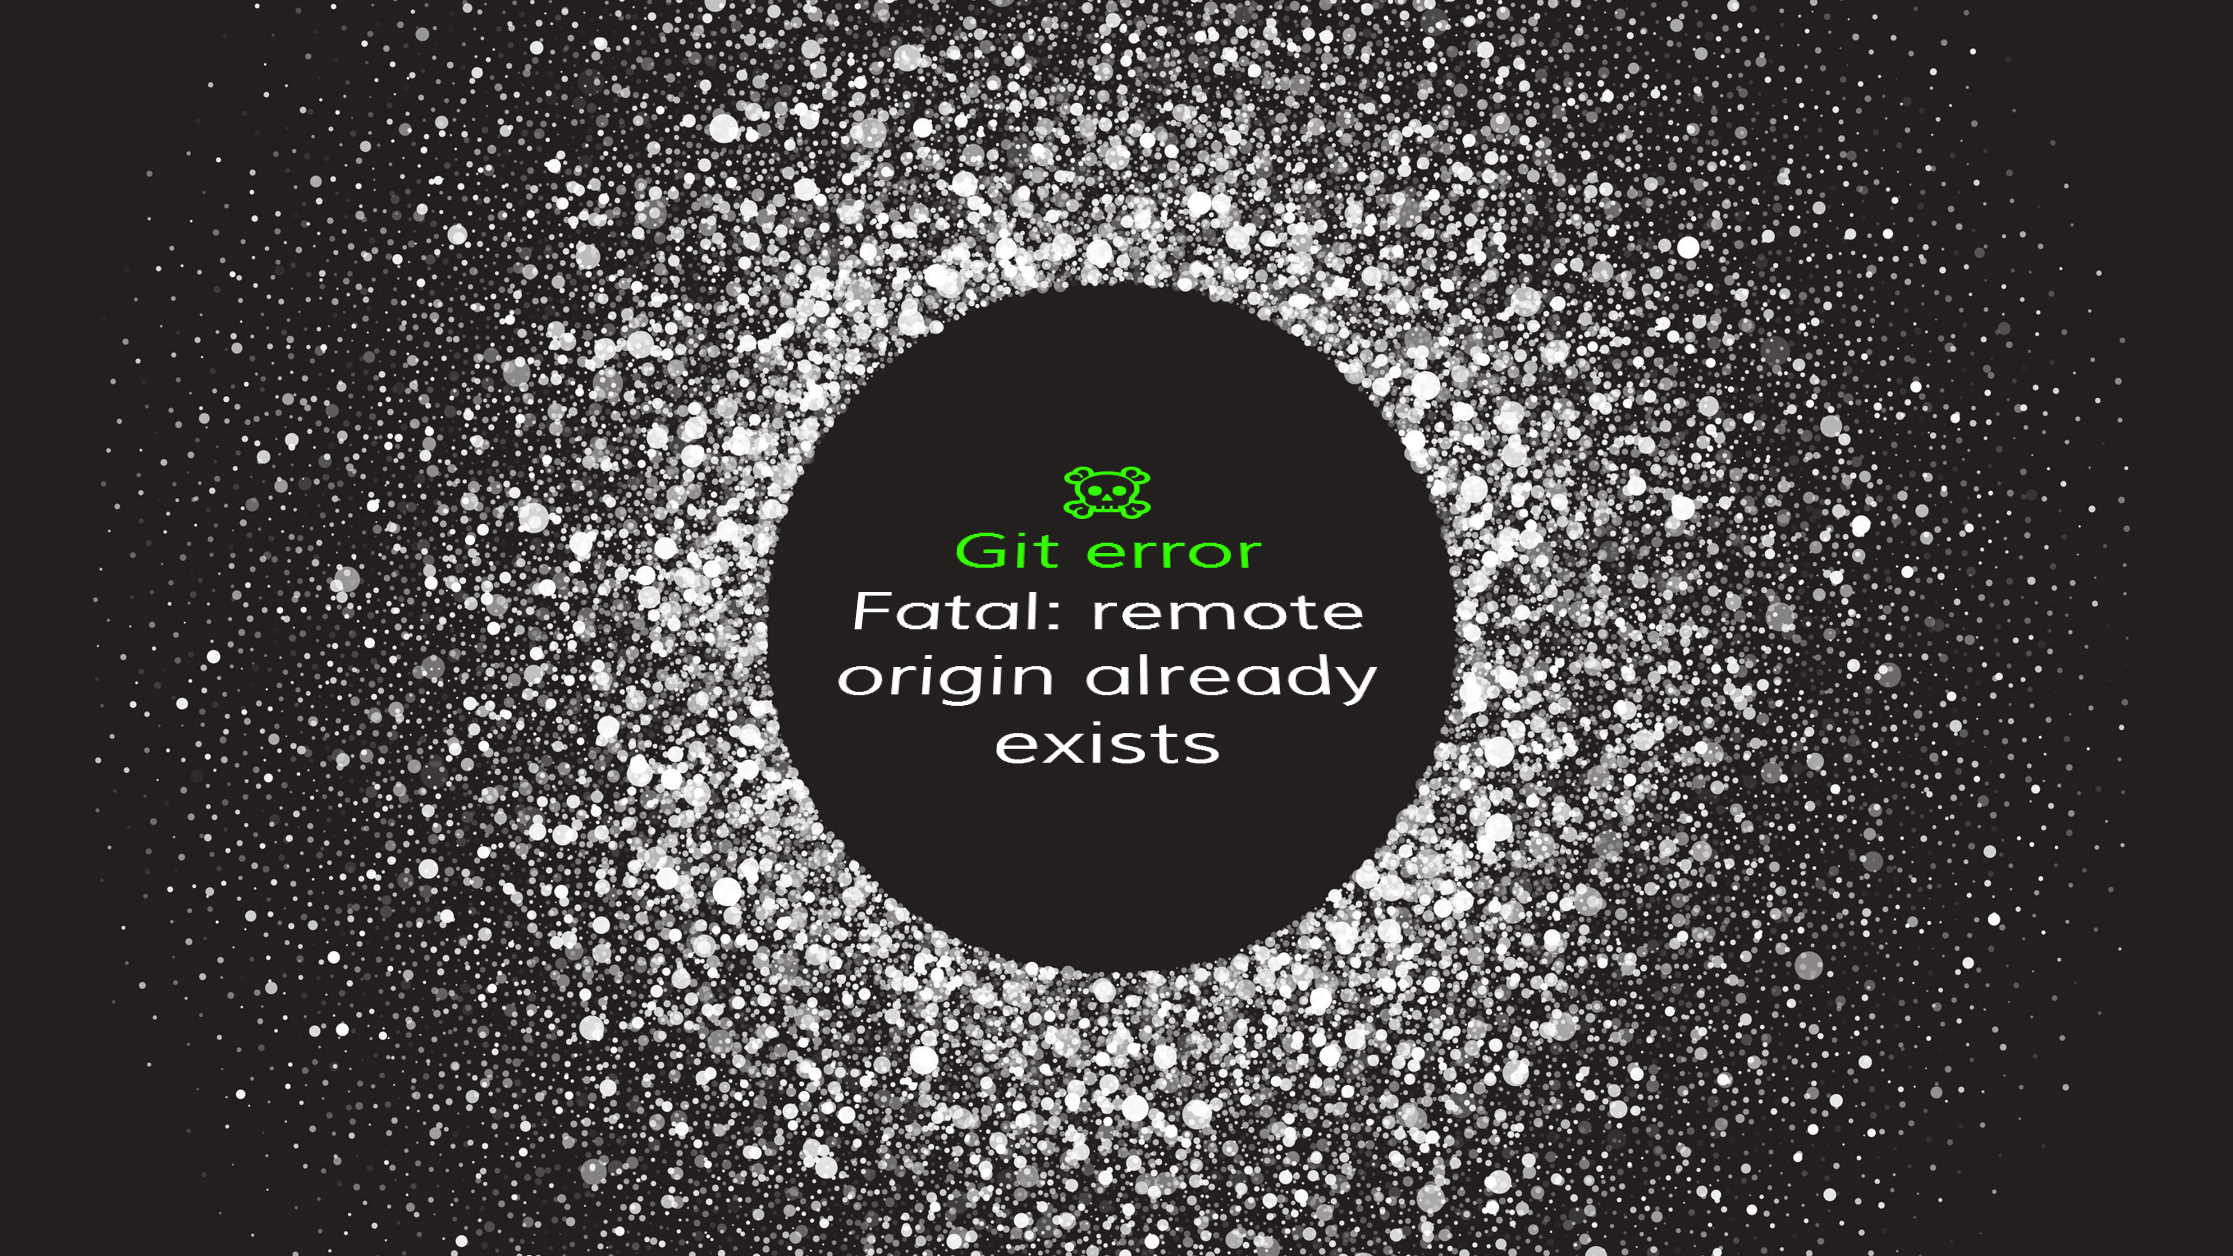 Git error - Fatal: remote origin already exists and how to fix it